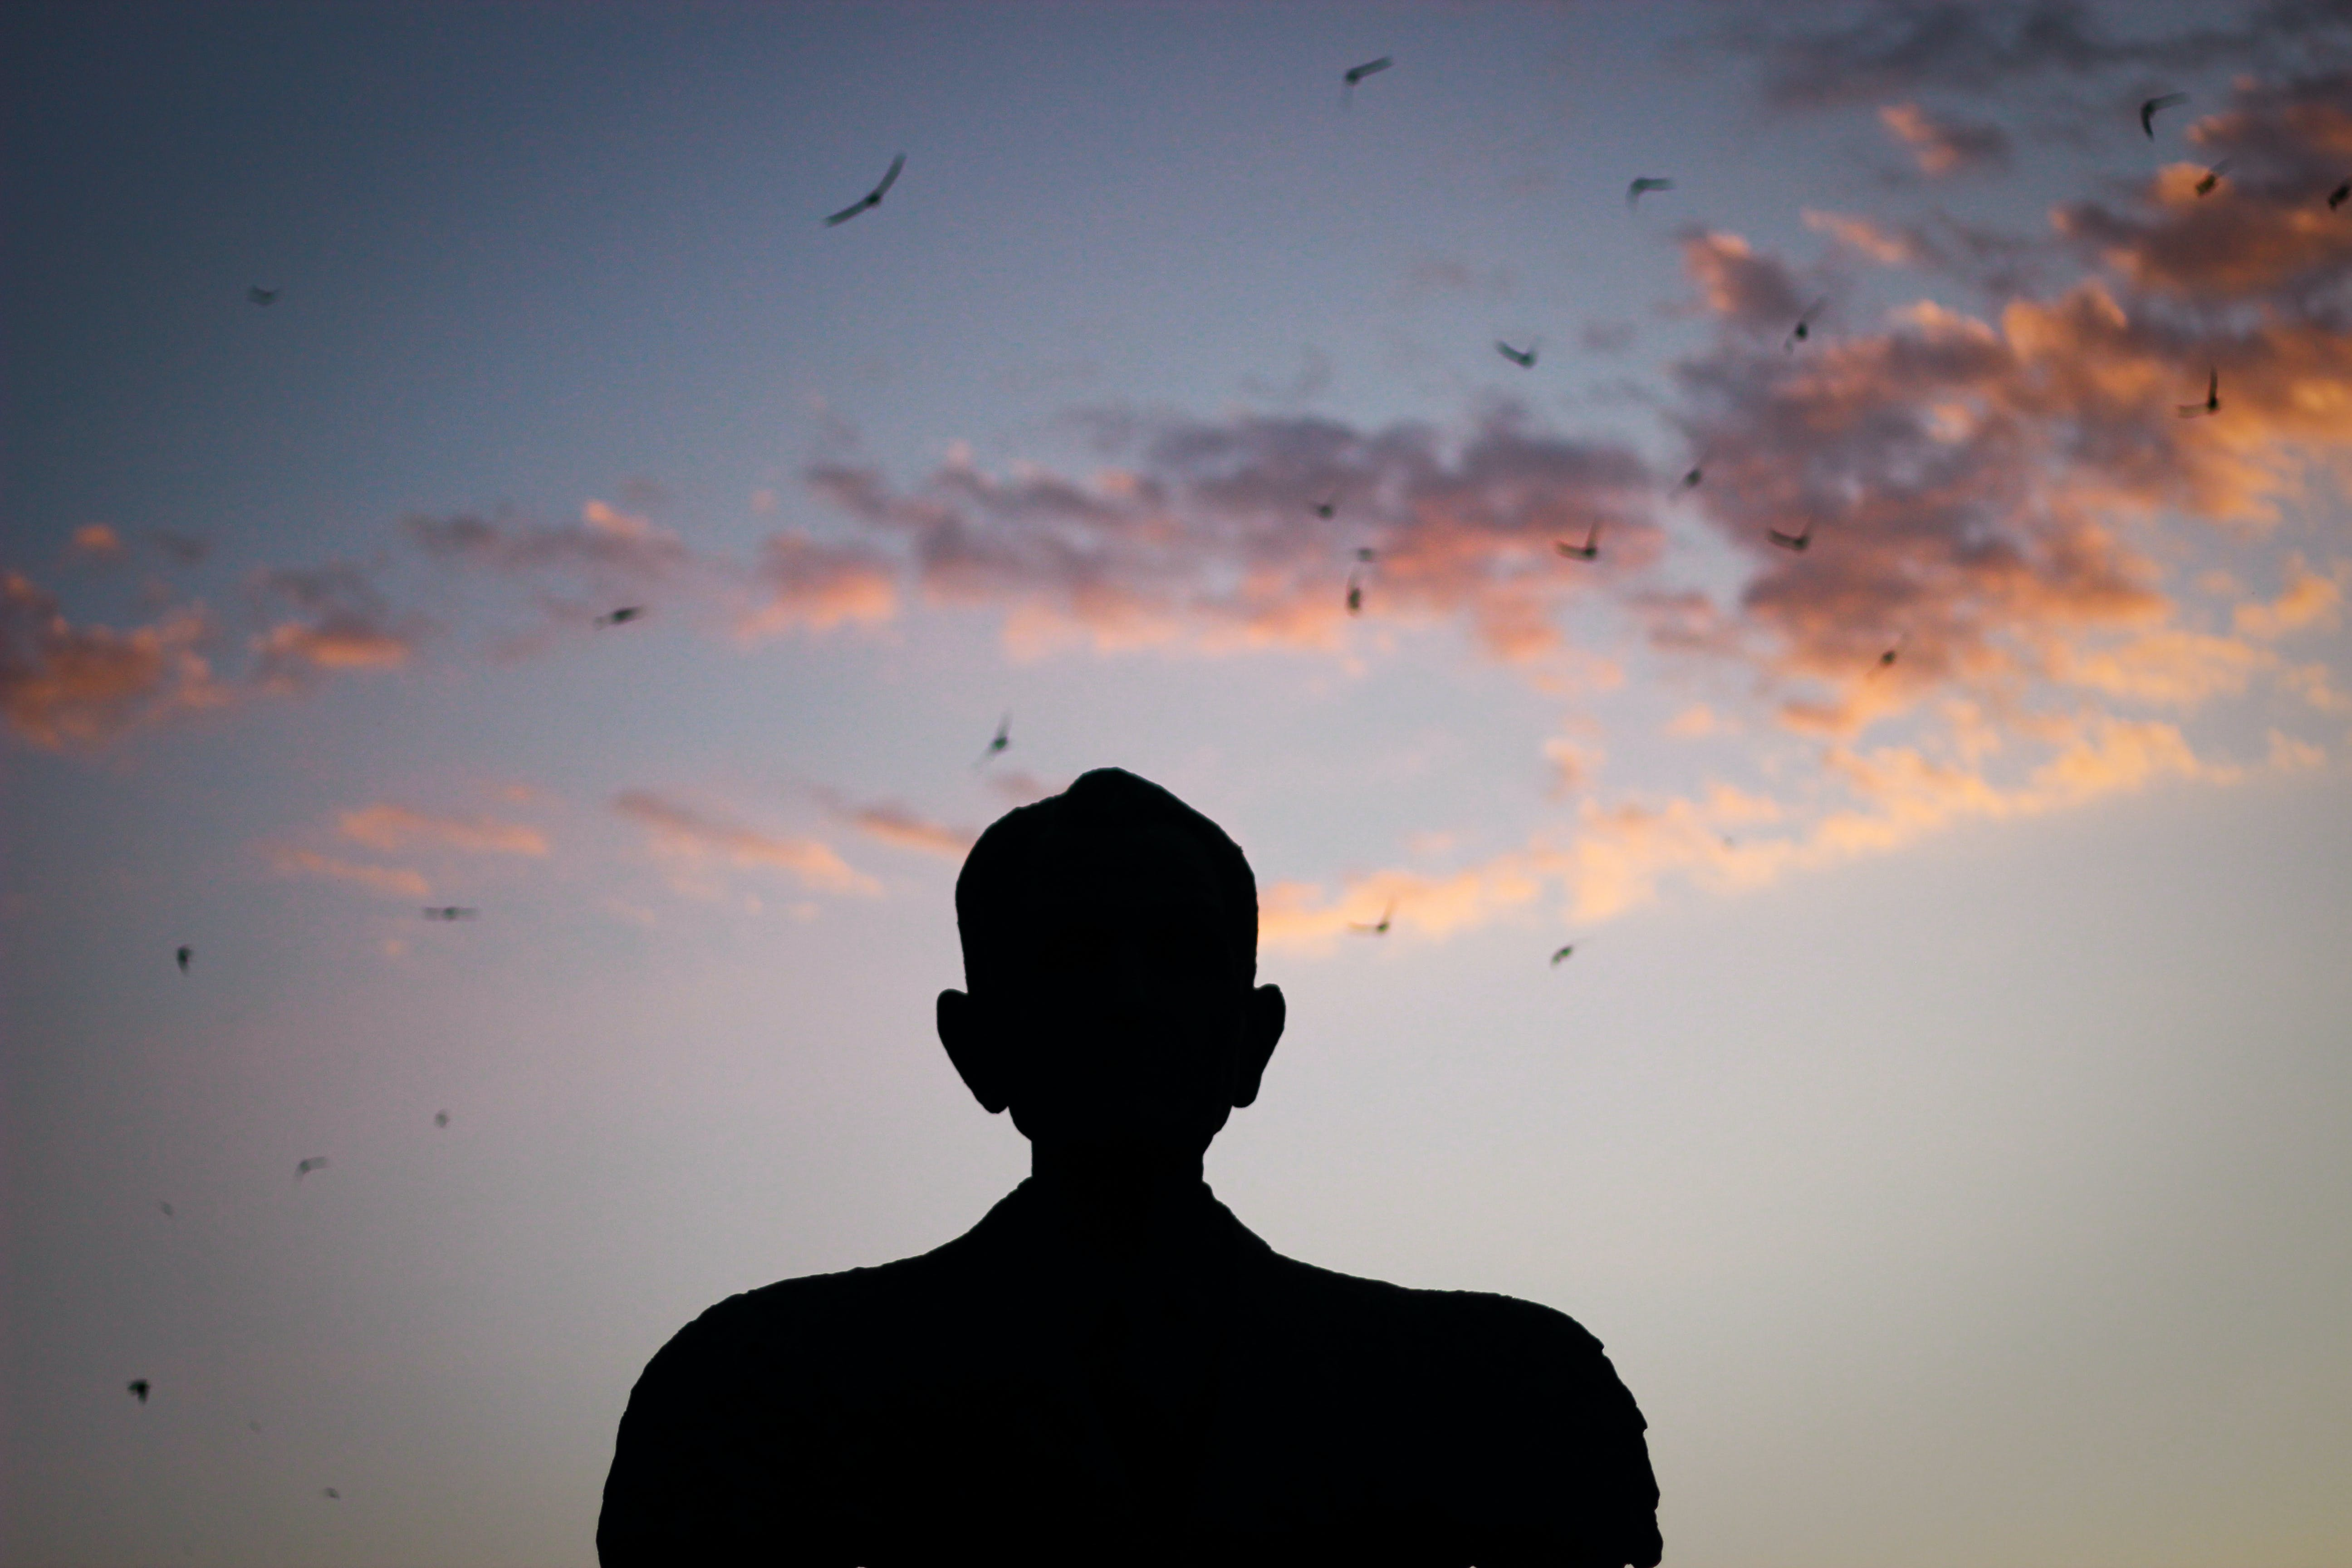 Silhouette of a Man Watching Birds Gliding on the Sky